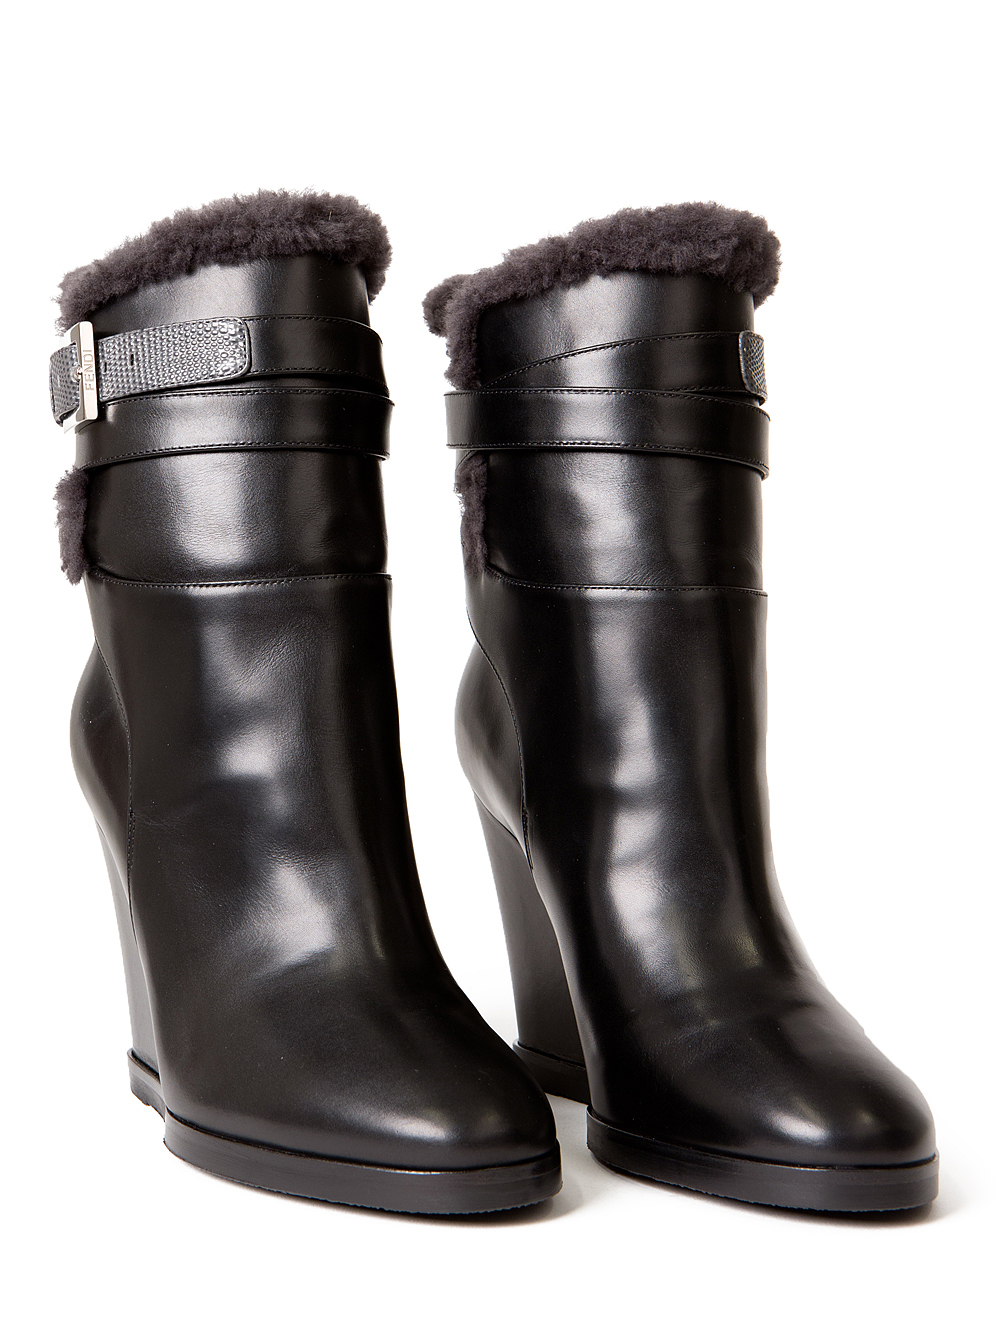 fendi shearling leather wedge boots in black lyst